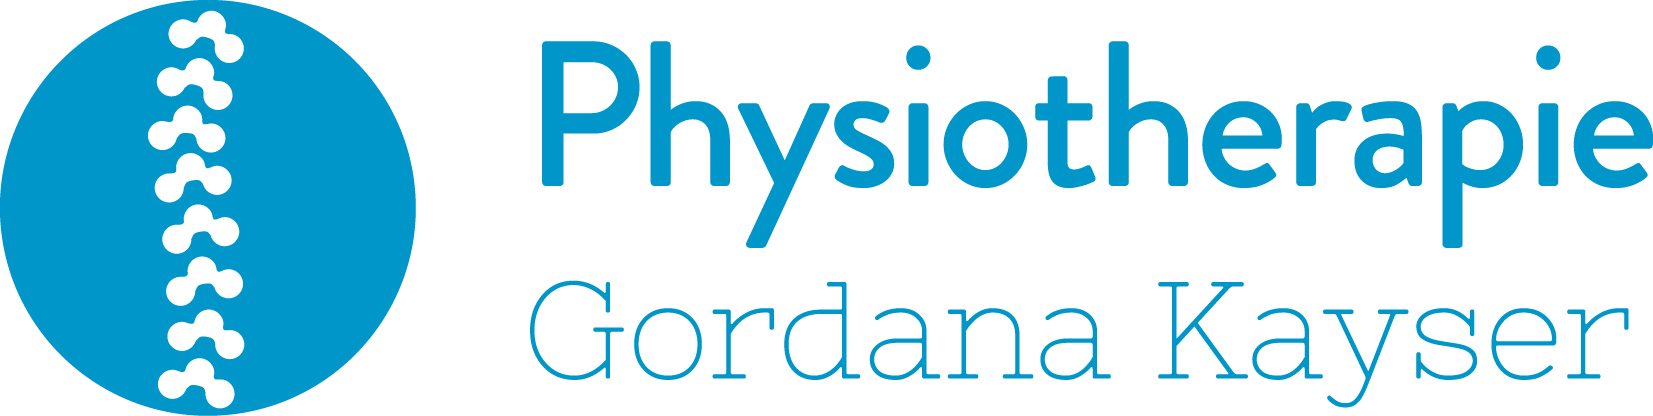 Physiotherapie Gordana Kayser